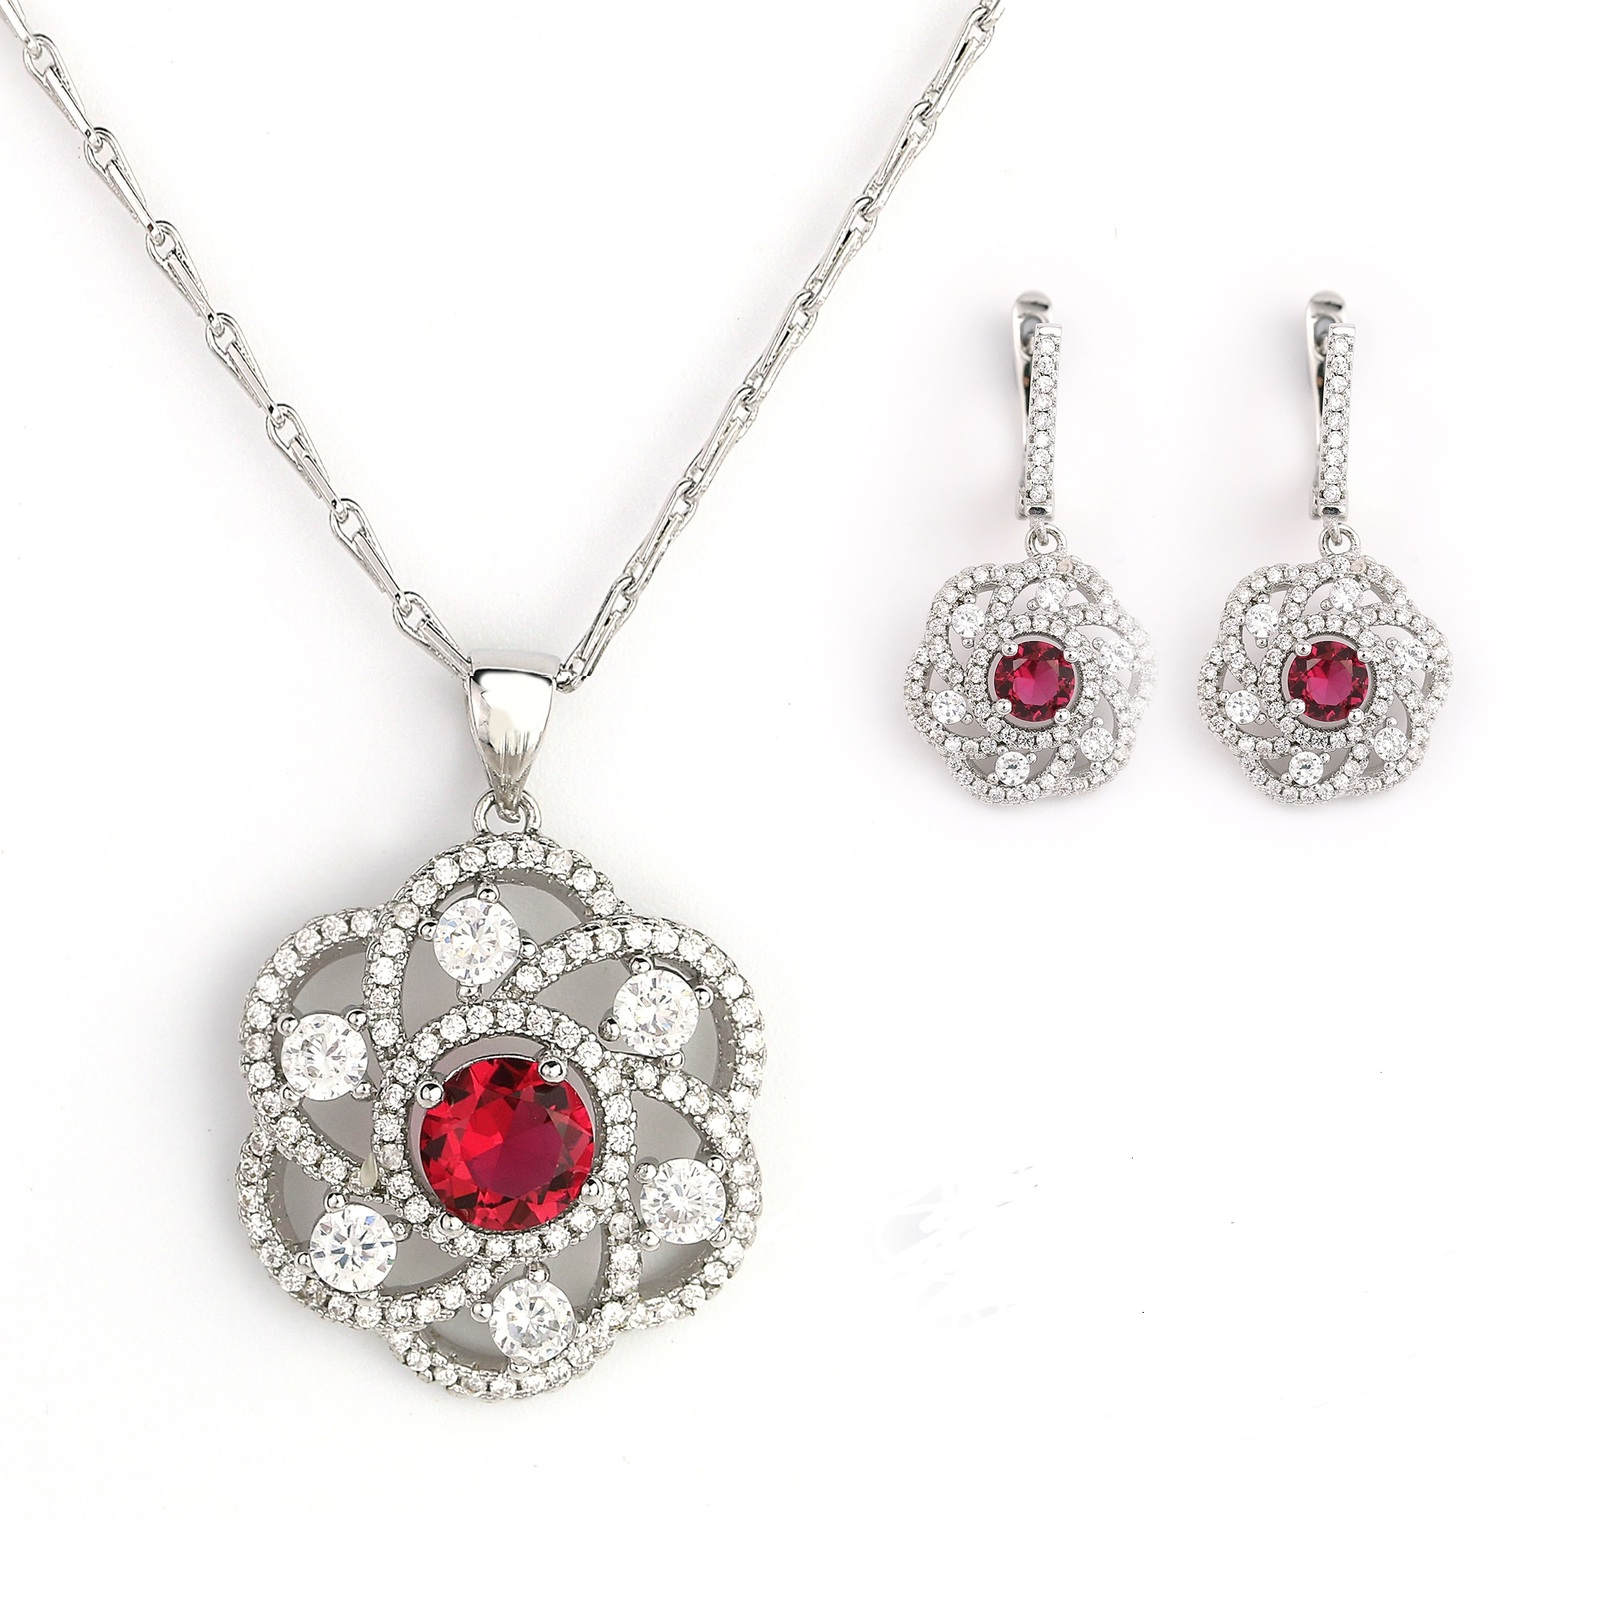 Silver Tone Set With Faux Red Ruby & Swarovski Style Crystals- United Elegance - $29.99